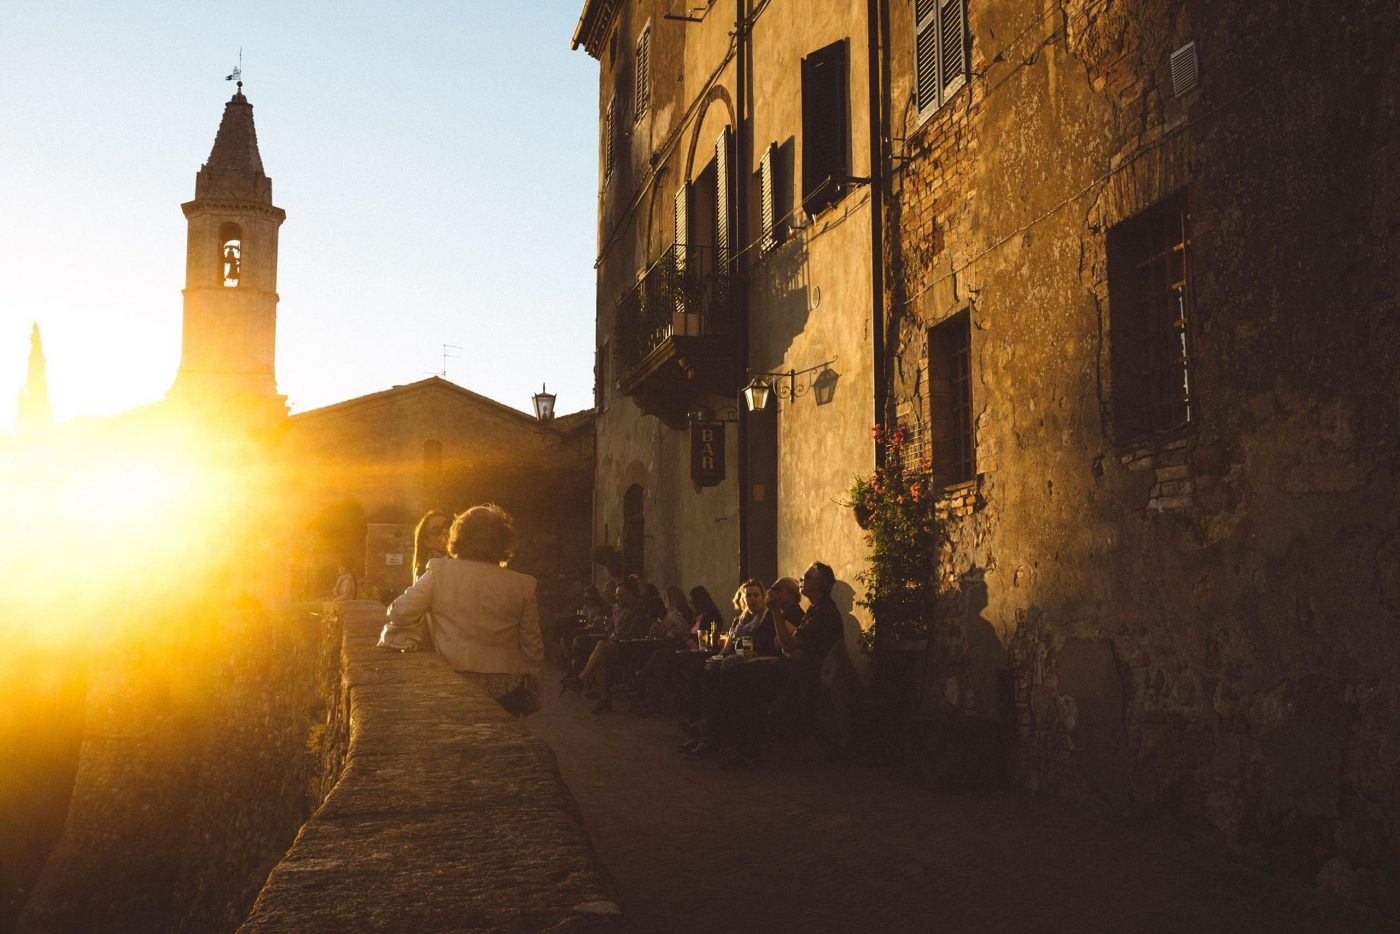 Umbria street photography at golden hour